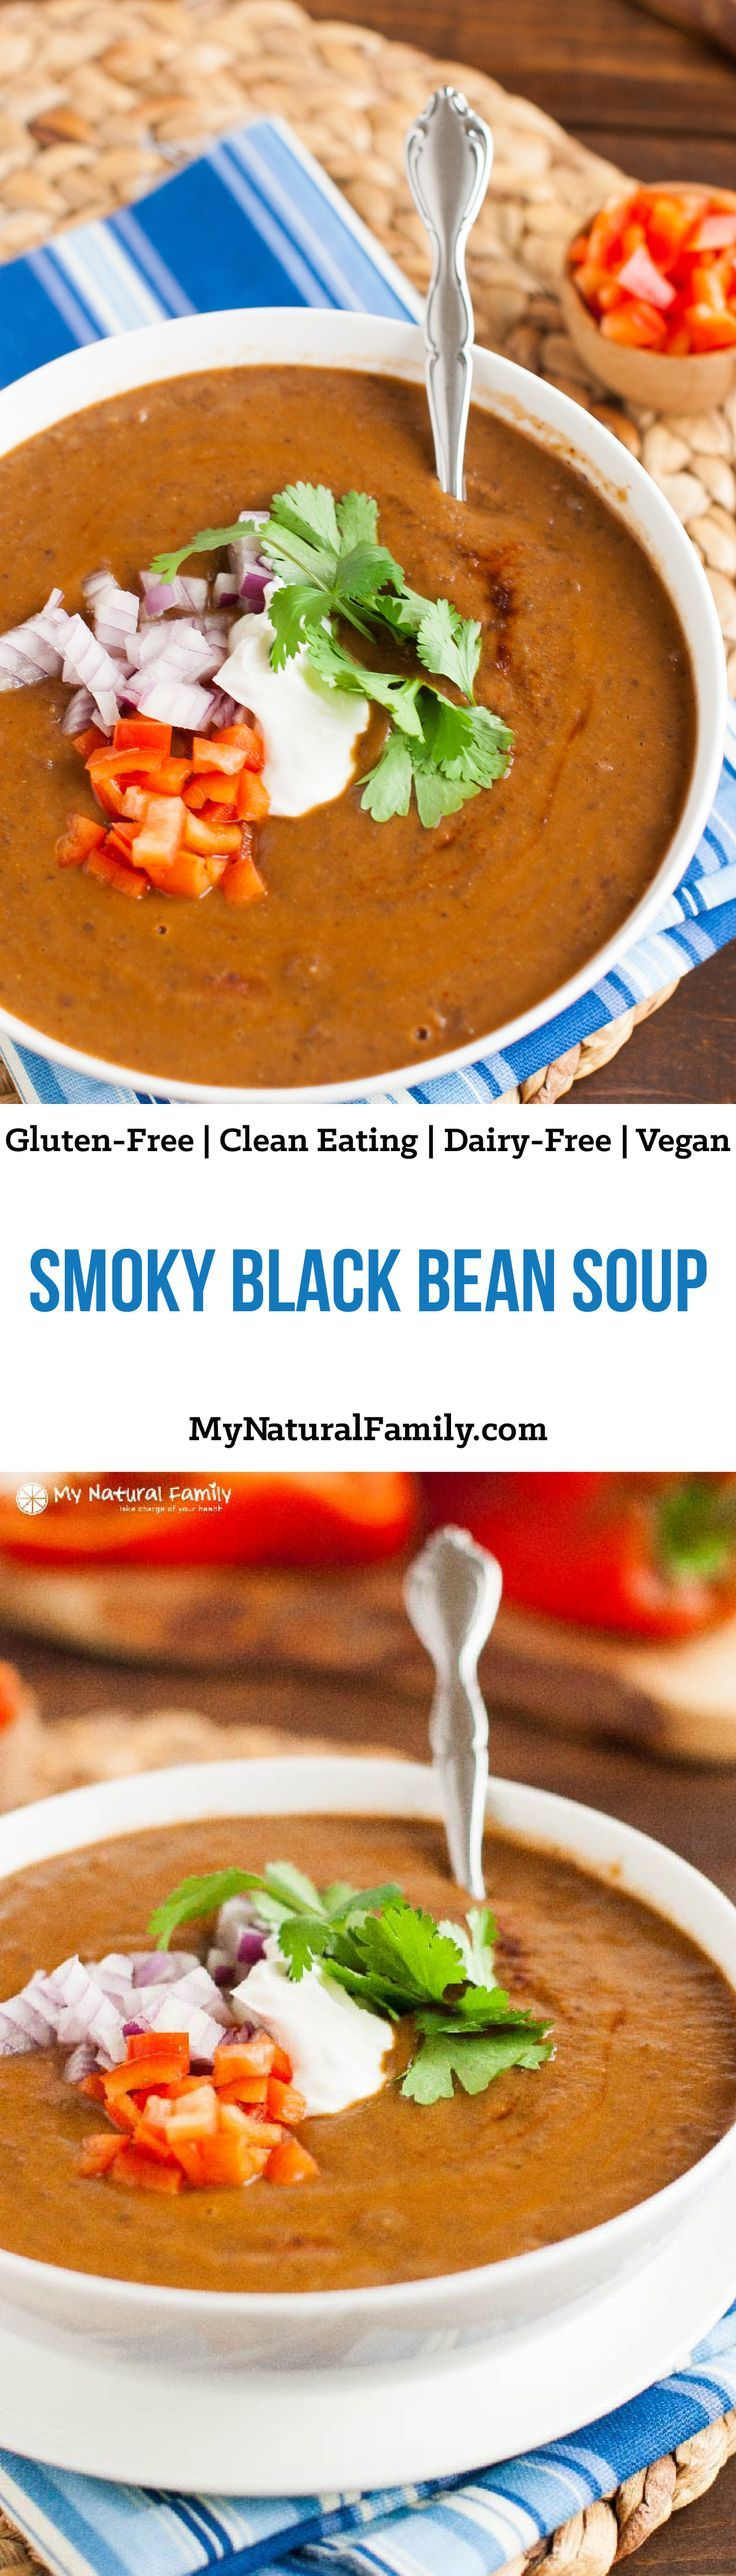 Smoky Black Bean Soup Recipe {Vegan, Clean Eating, Gluten-Free, Dairy-Free} - made from scratch and rich with smoky flavor.